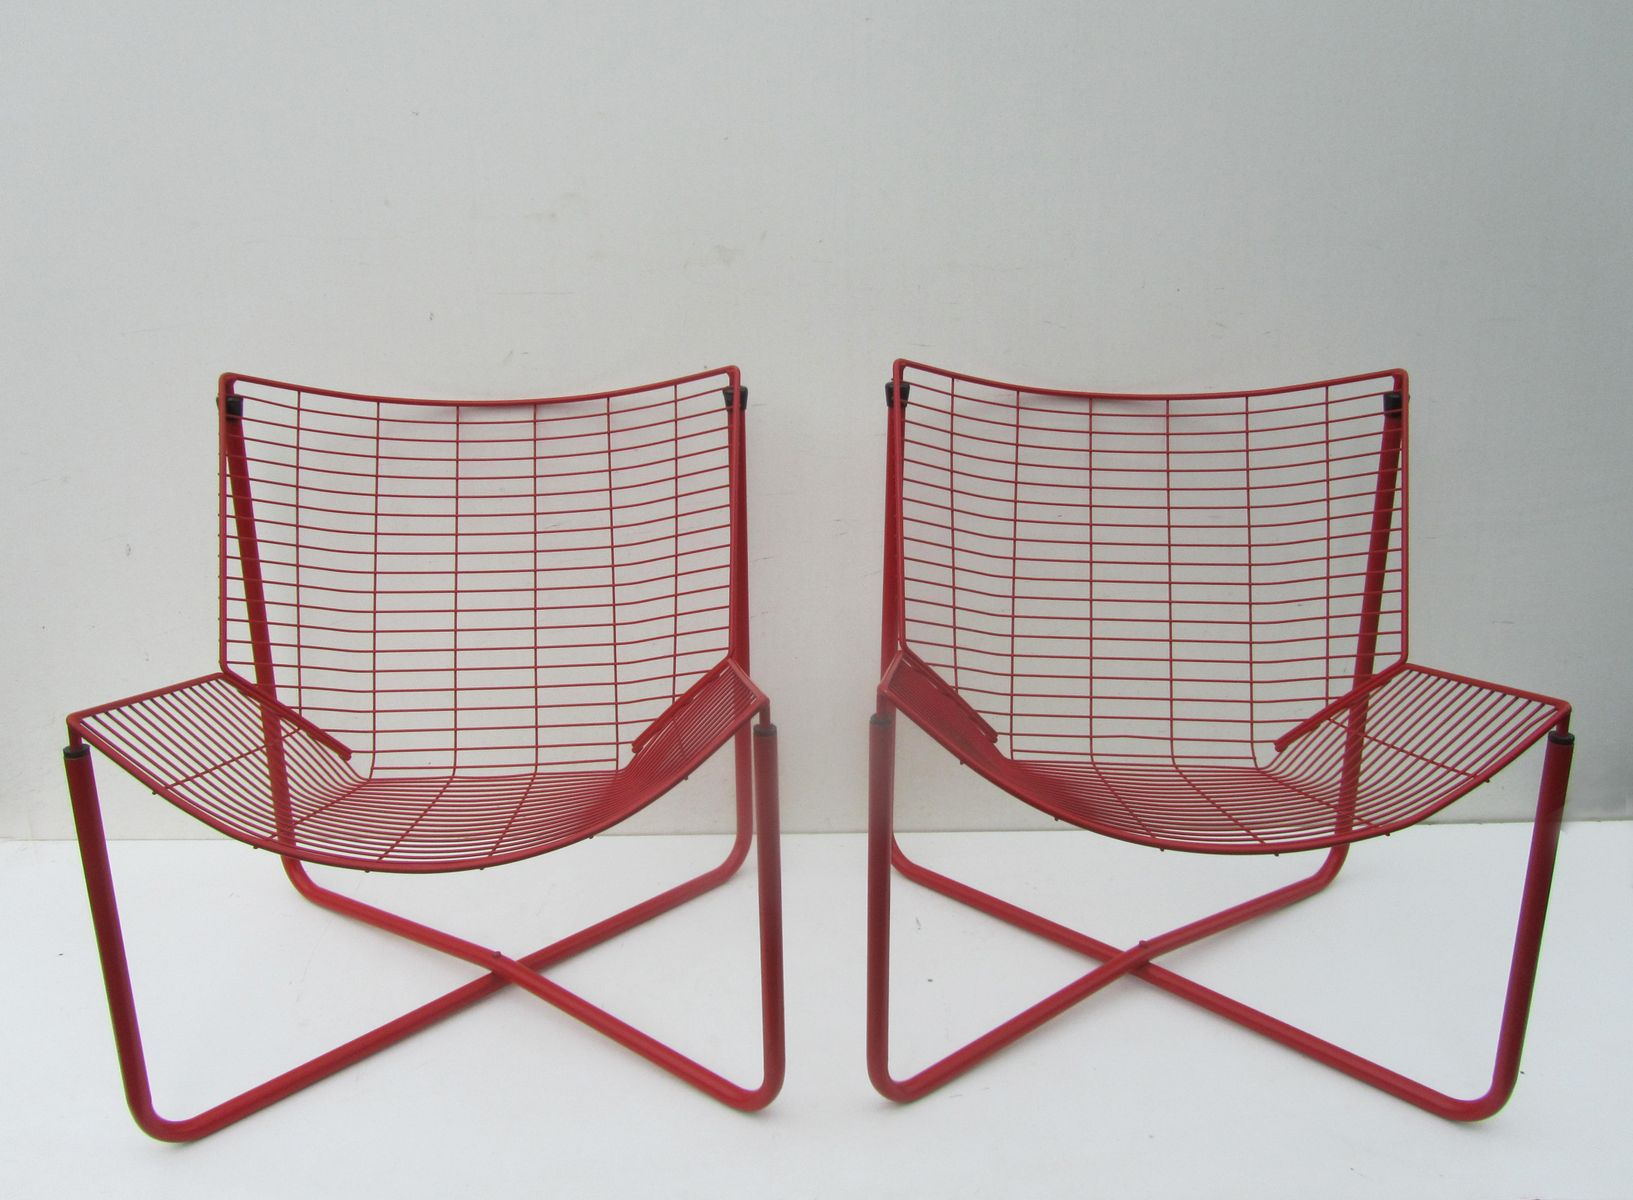 ikea metal chairs high chair walmart red wire jarpen by niels gammelgaard for